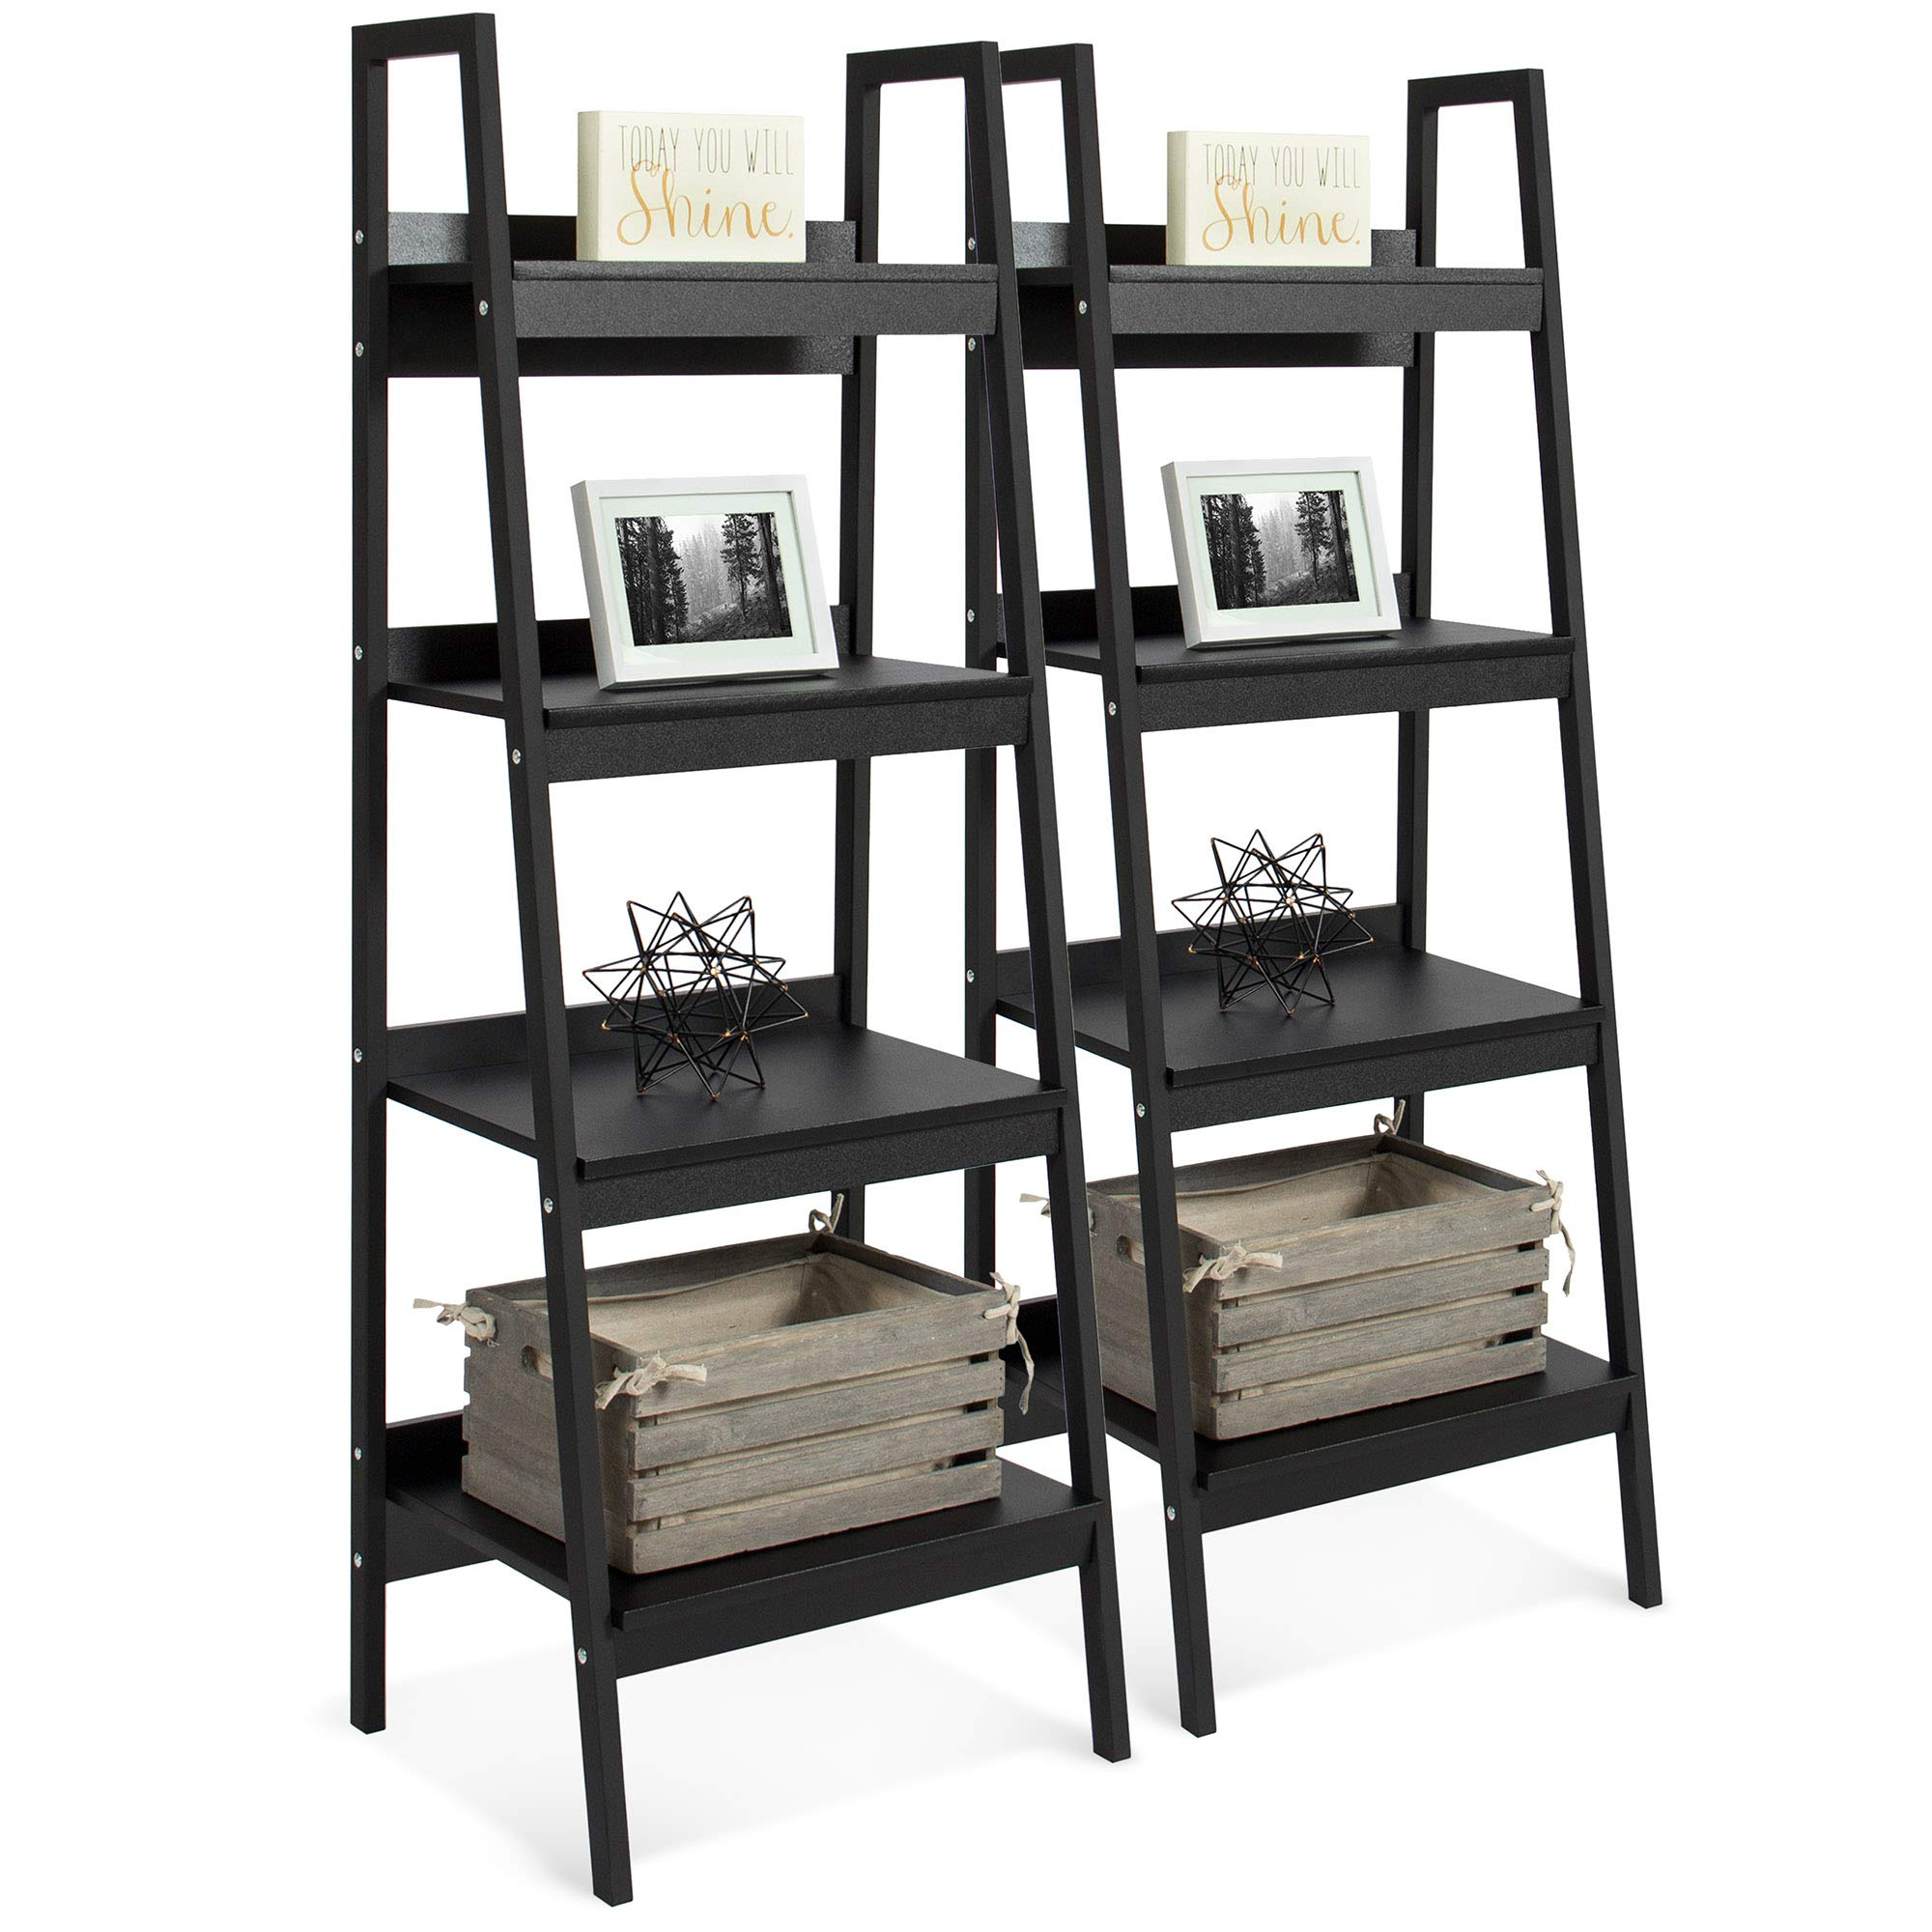 Best Choice Products Set of 2 4-Shelf Modern Open Wooden Ladder Bookcase Storage Display Organizer Decor with Metal Framing, Black